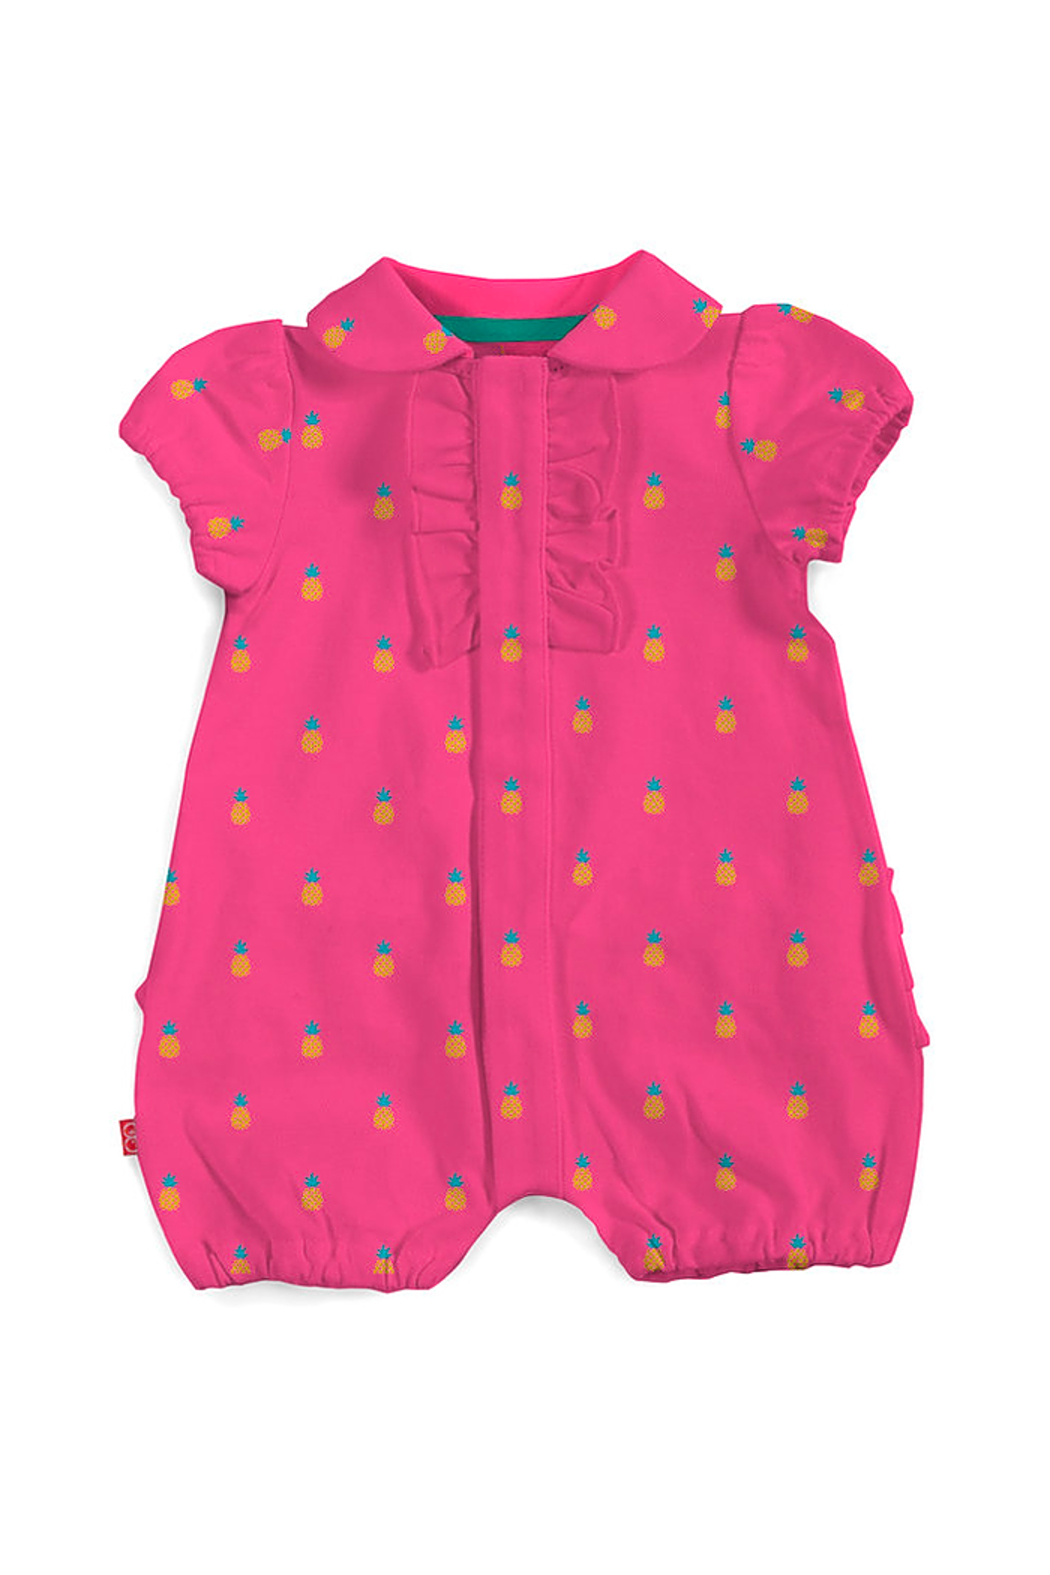 Magnetic Me Magnetic Pineapples Polo Romper - Main Image